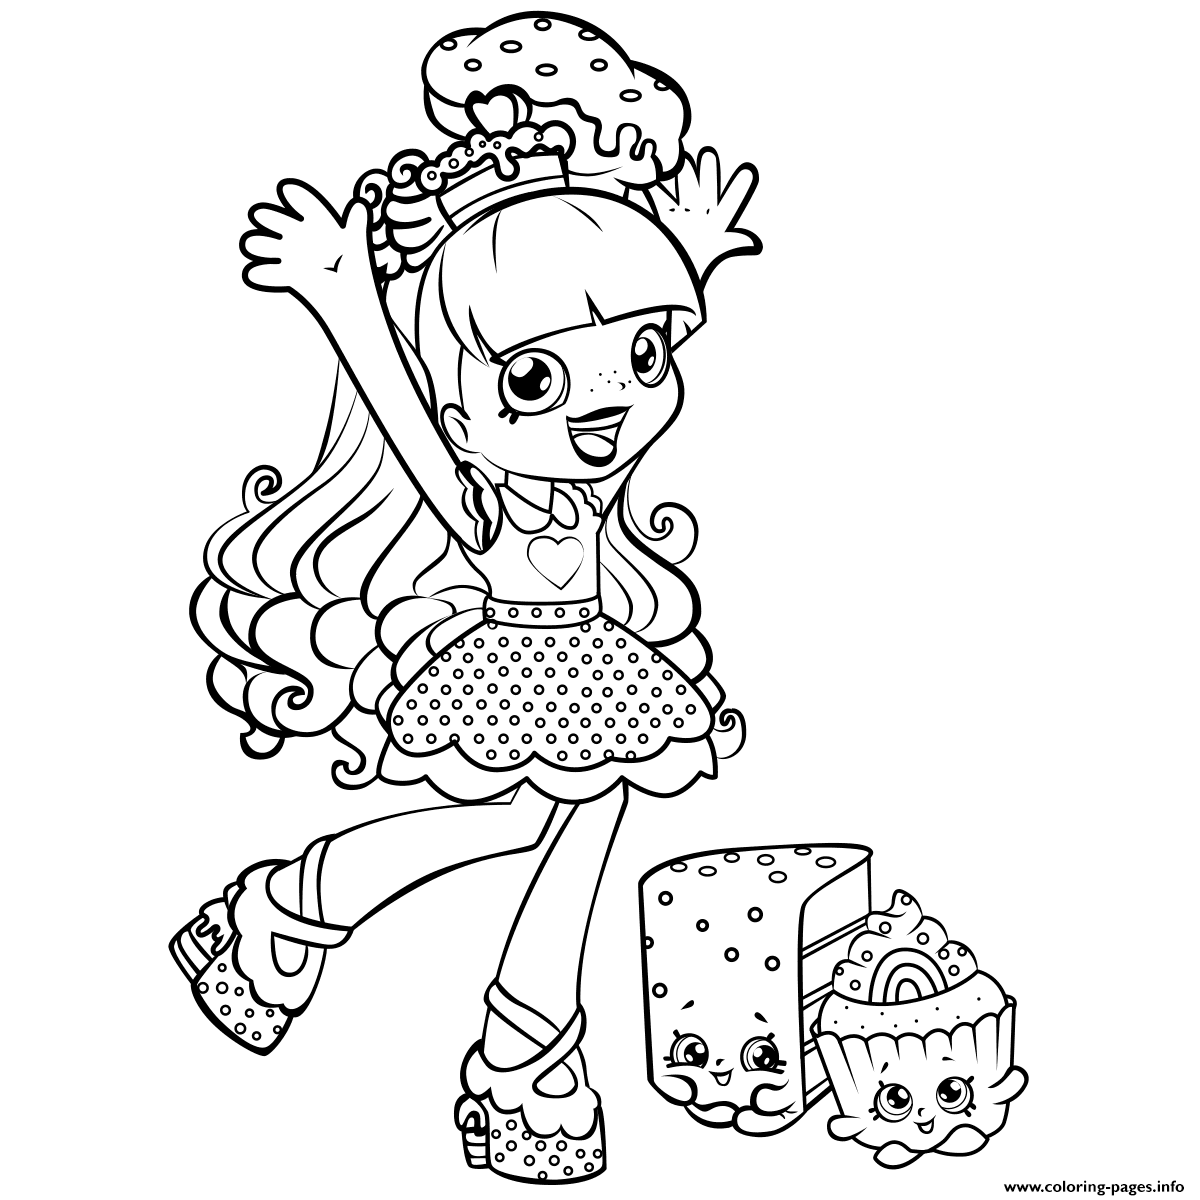 Shopkins color sheets - Shopkins Shoppie Is Happy Cupecake Colouring Print Shopkins Shoppie Is Happy Cupecake Coloring Pages